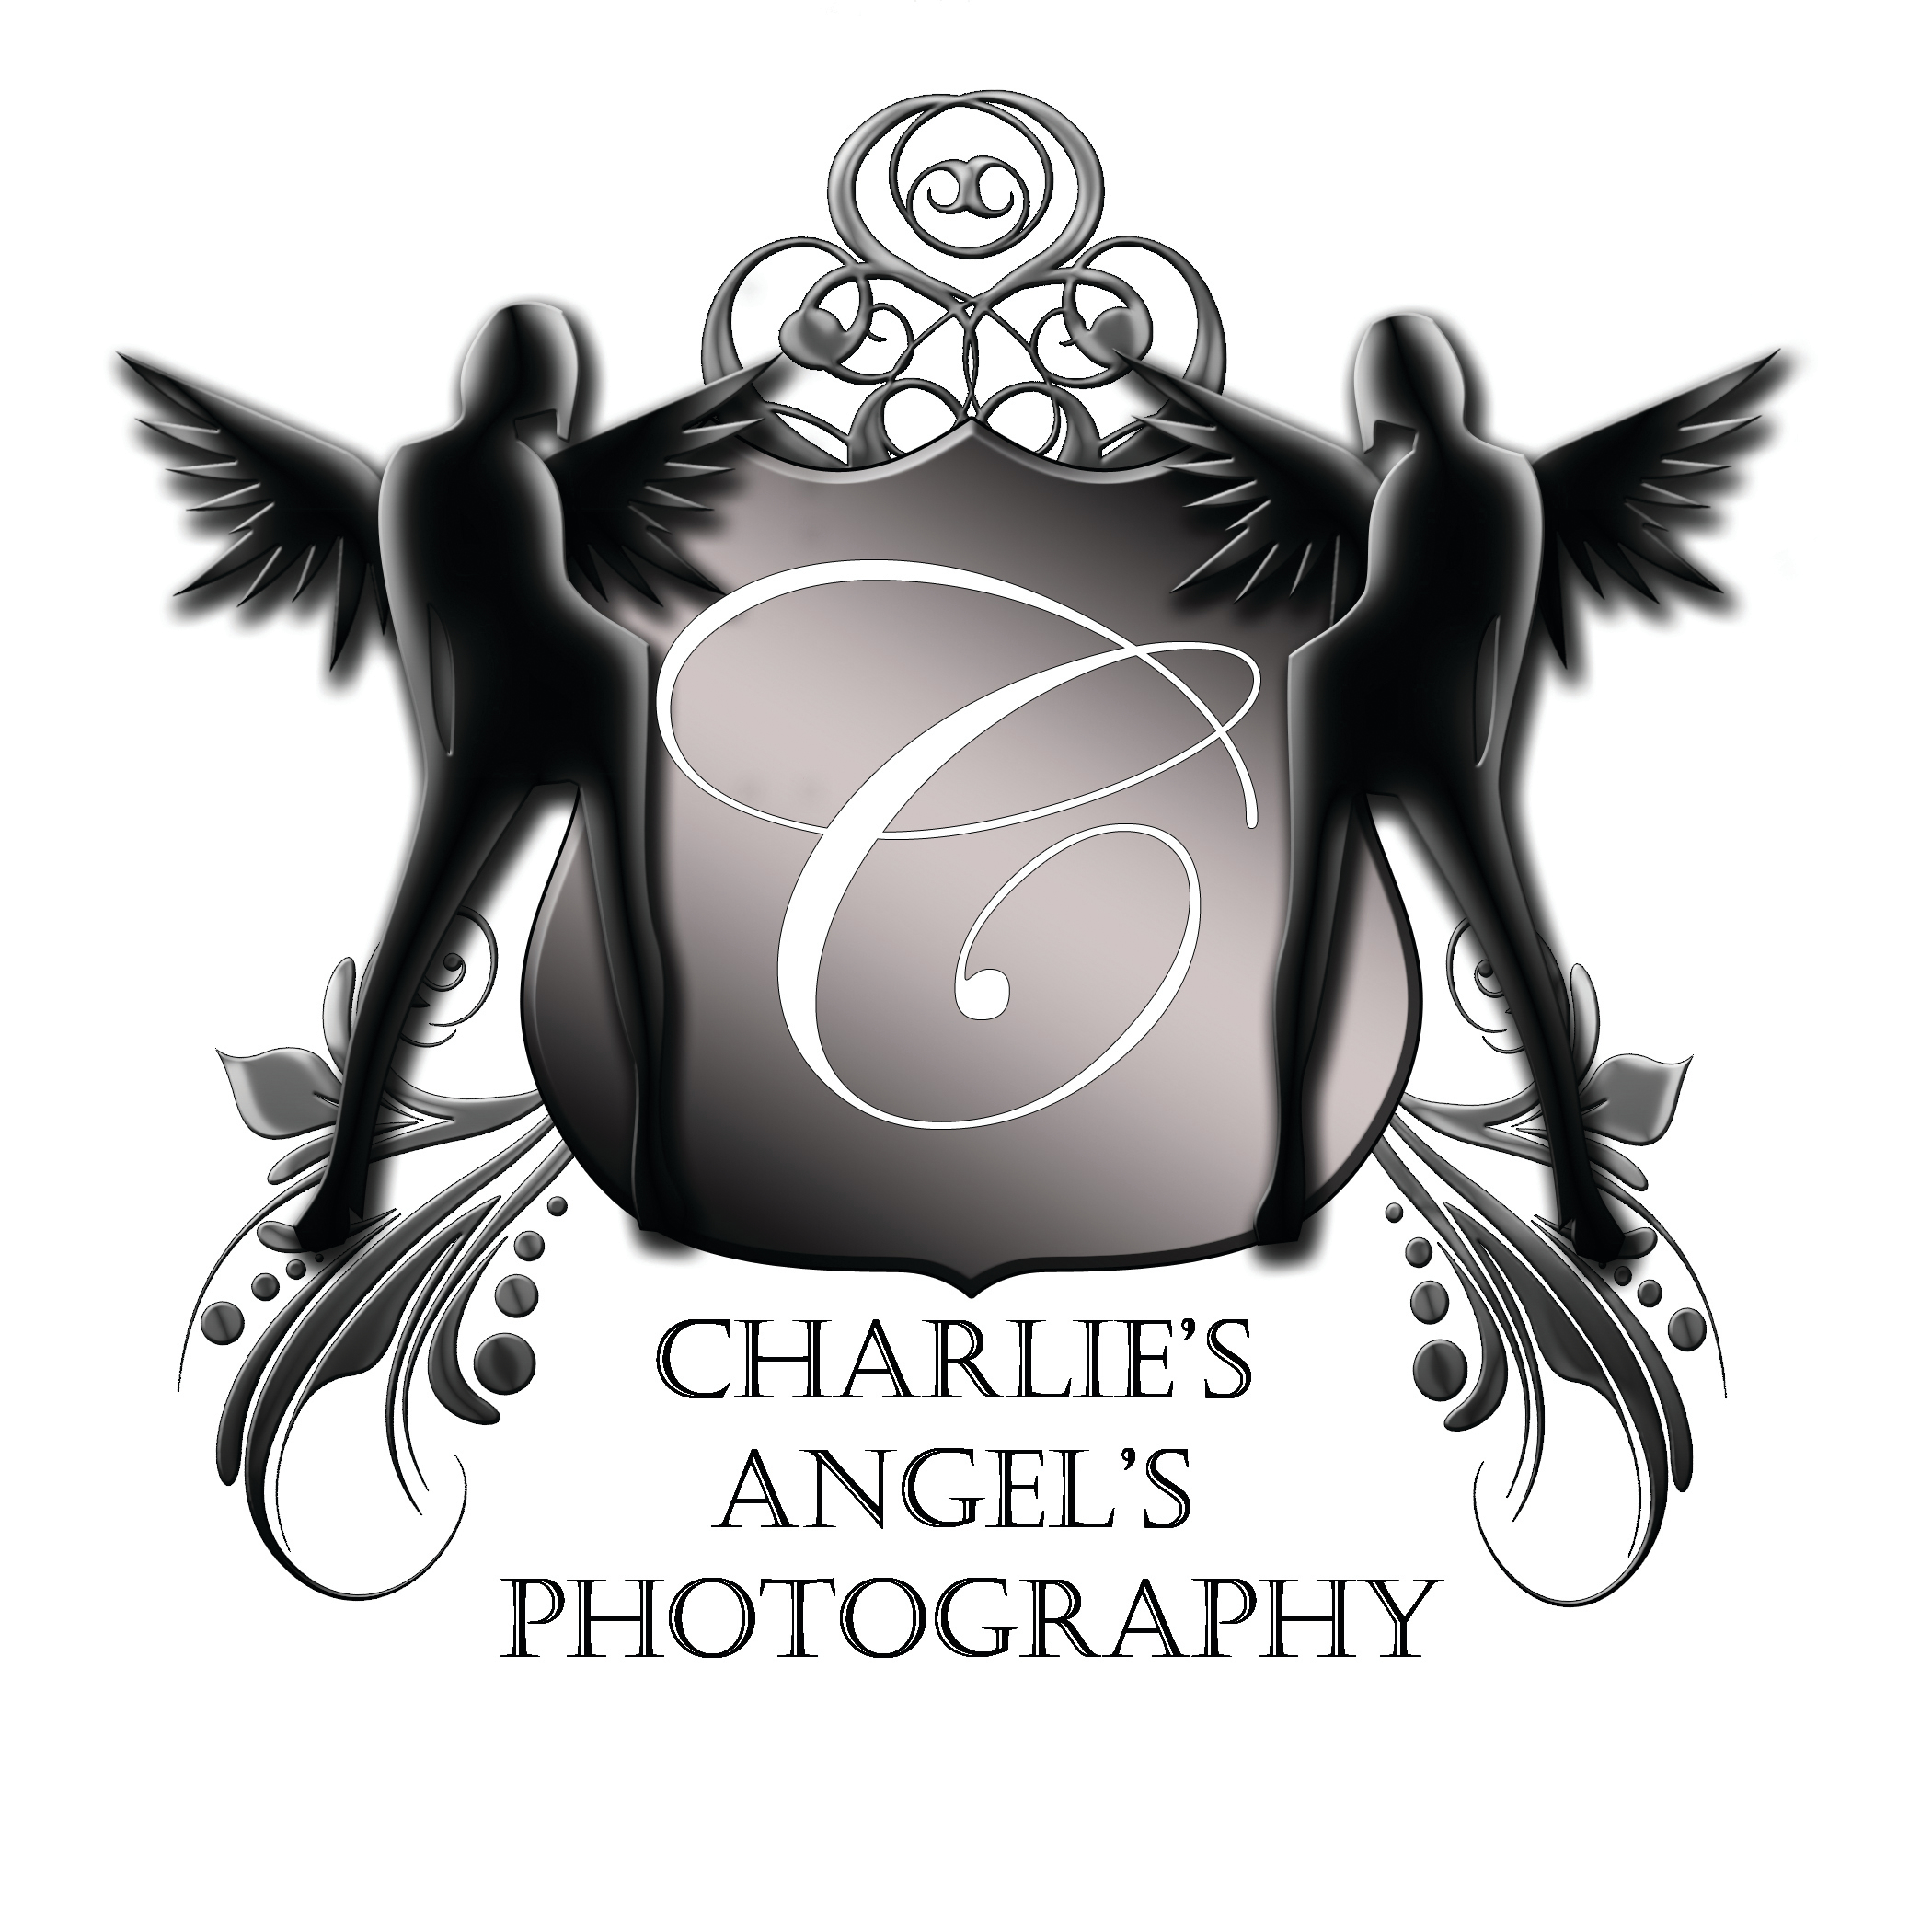 Charlie's Angels Photography image 1